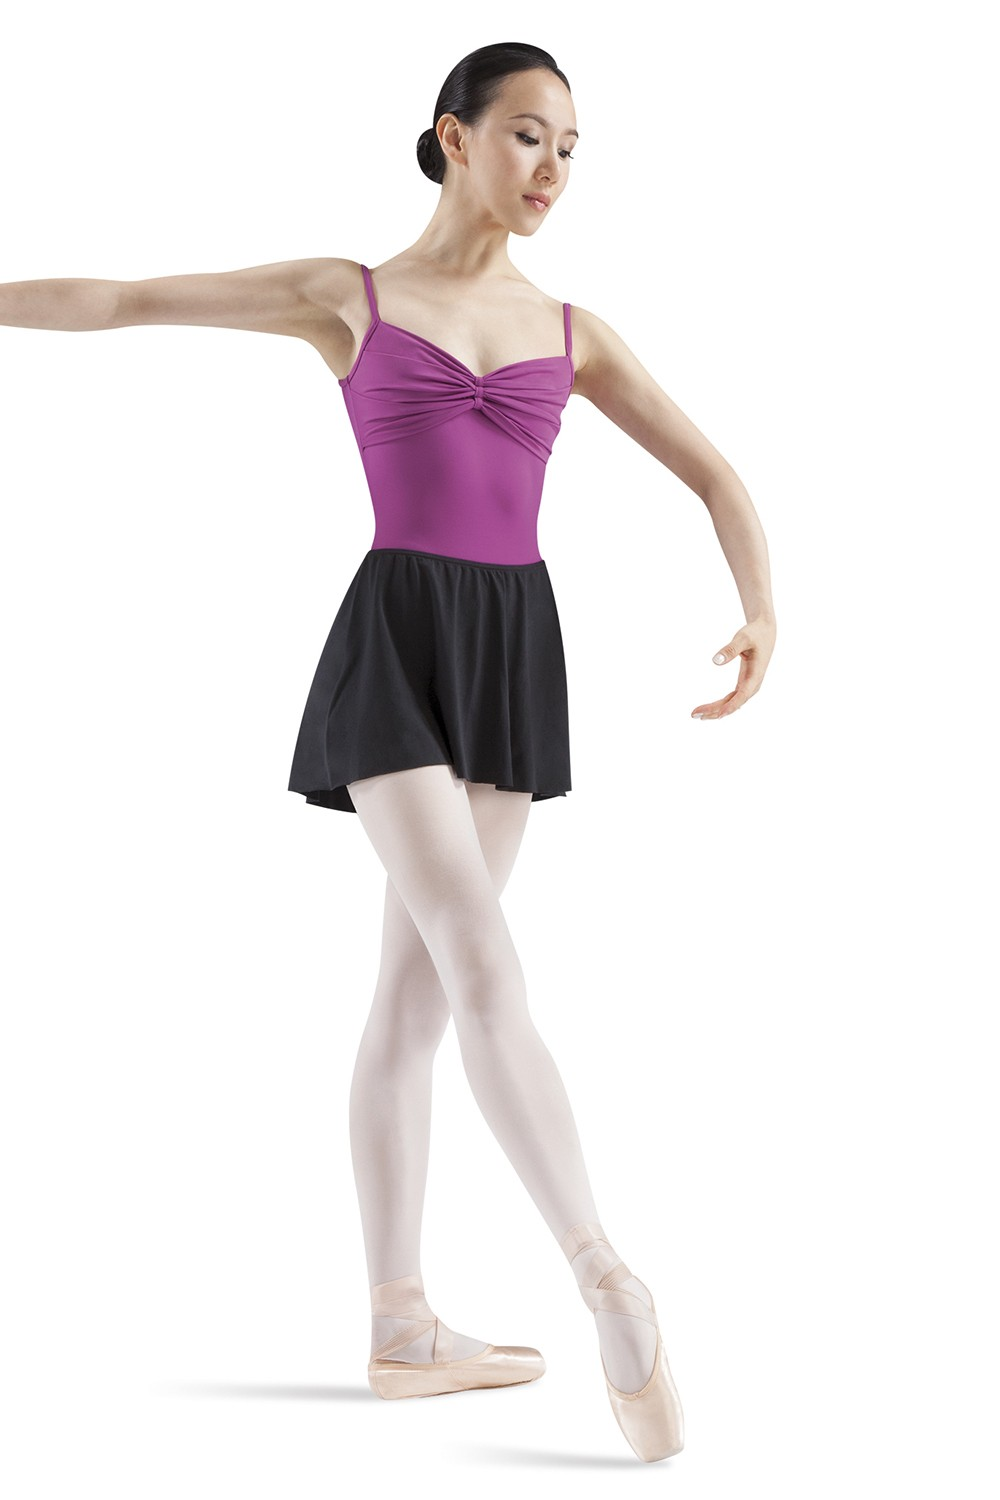 Sunshine Women's Dance Skirts